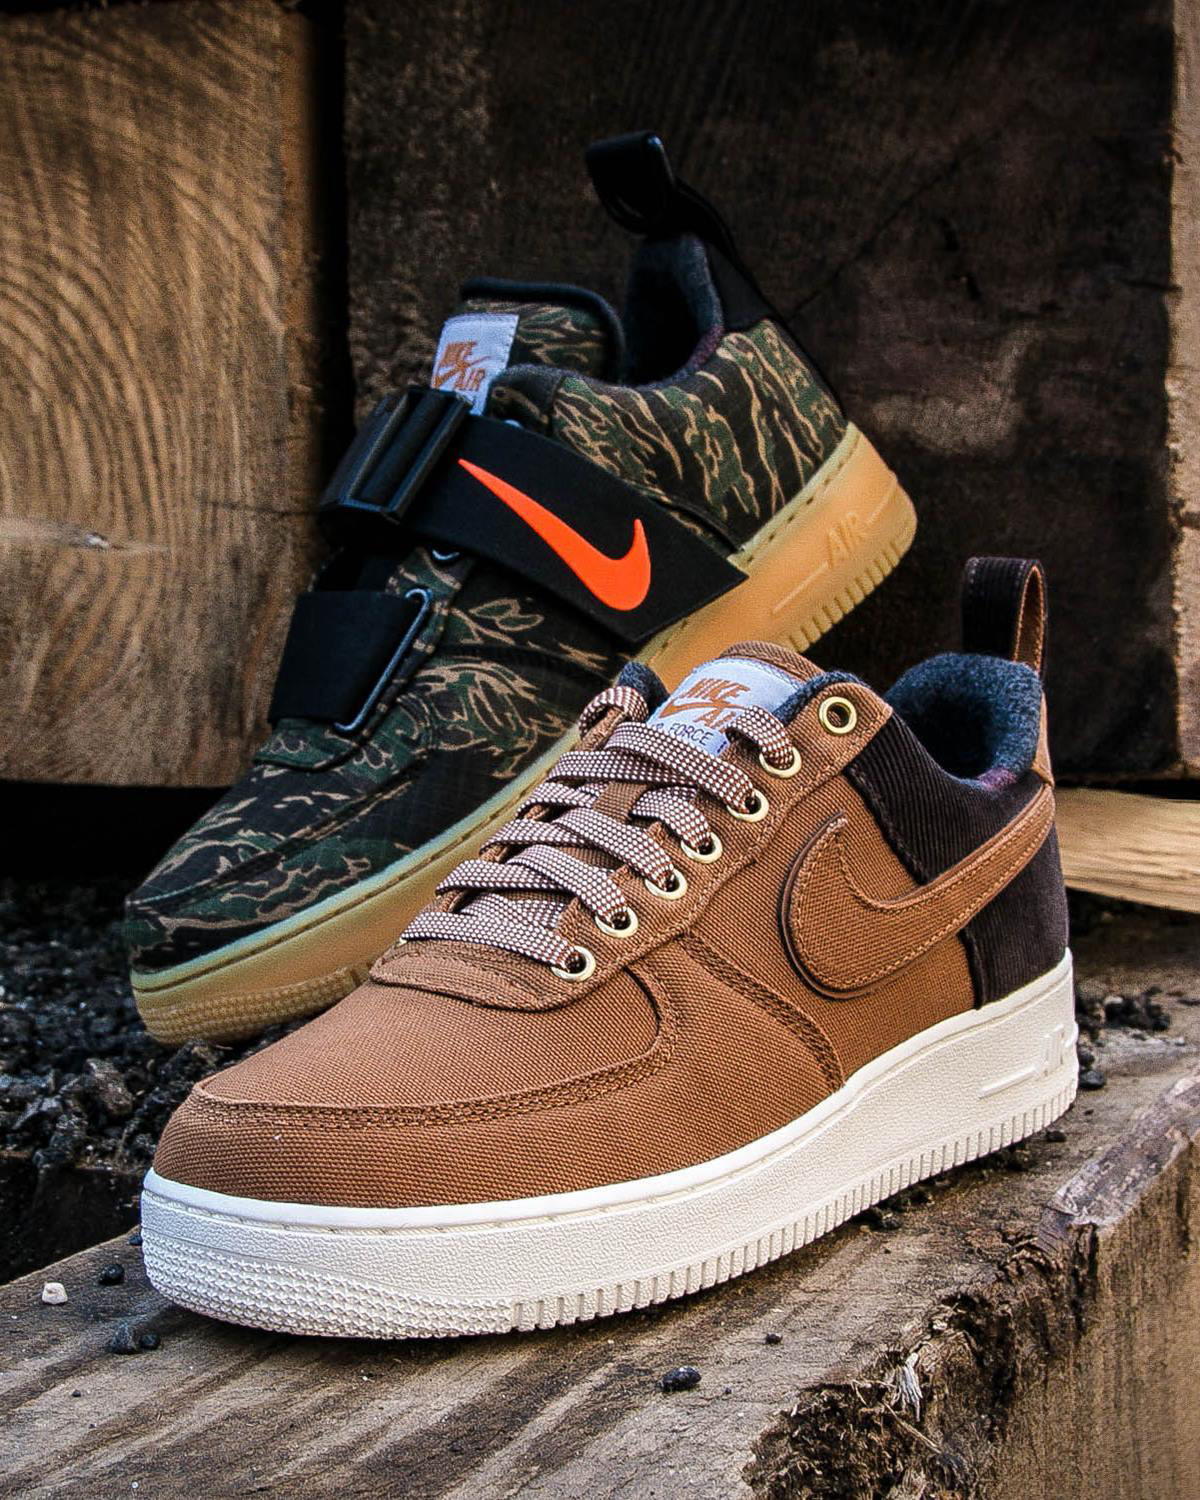 nike-carhartt-shoes-where-to-buy